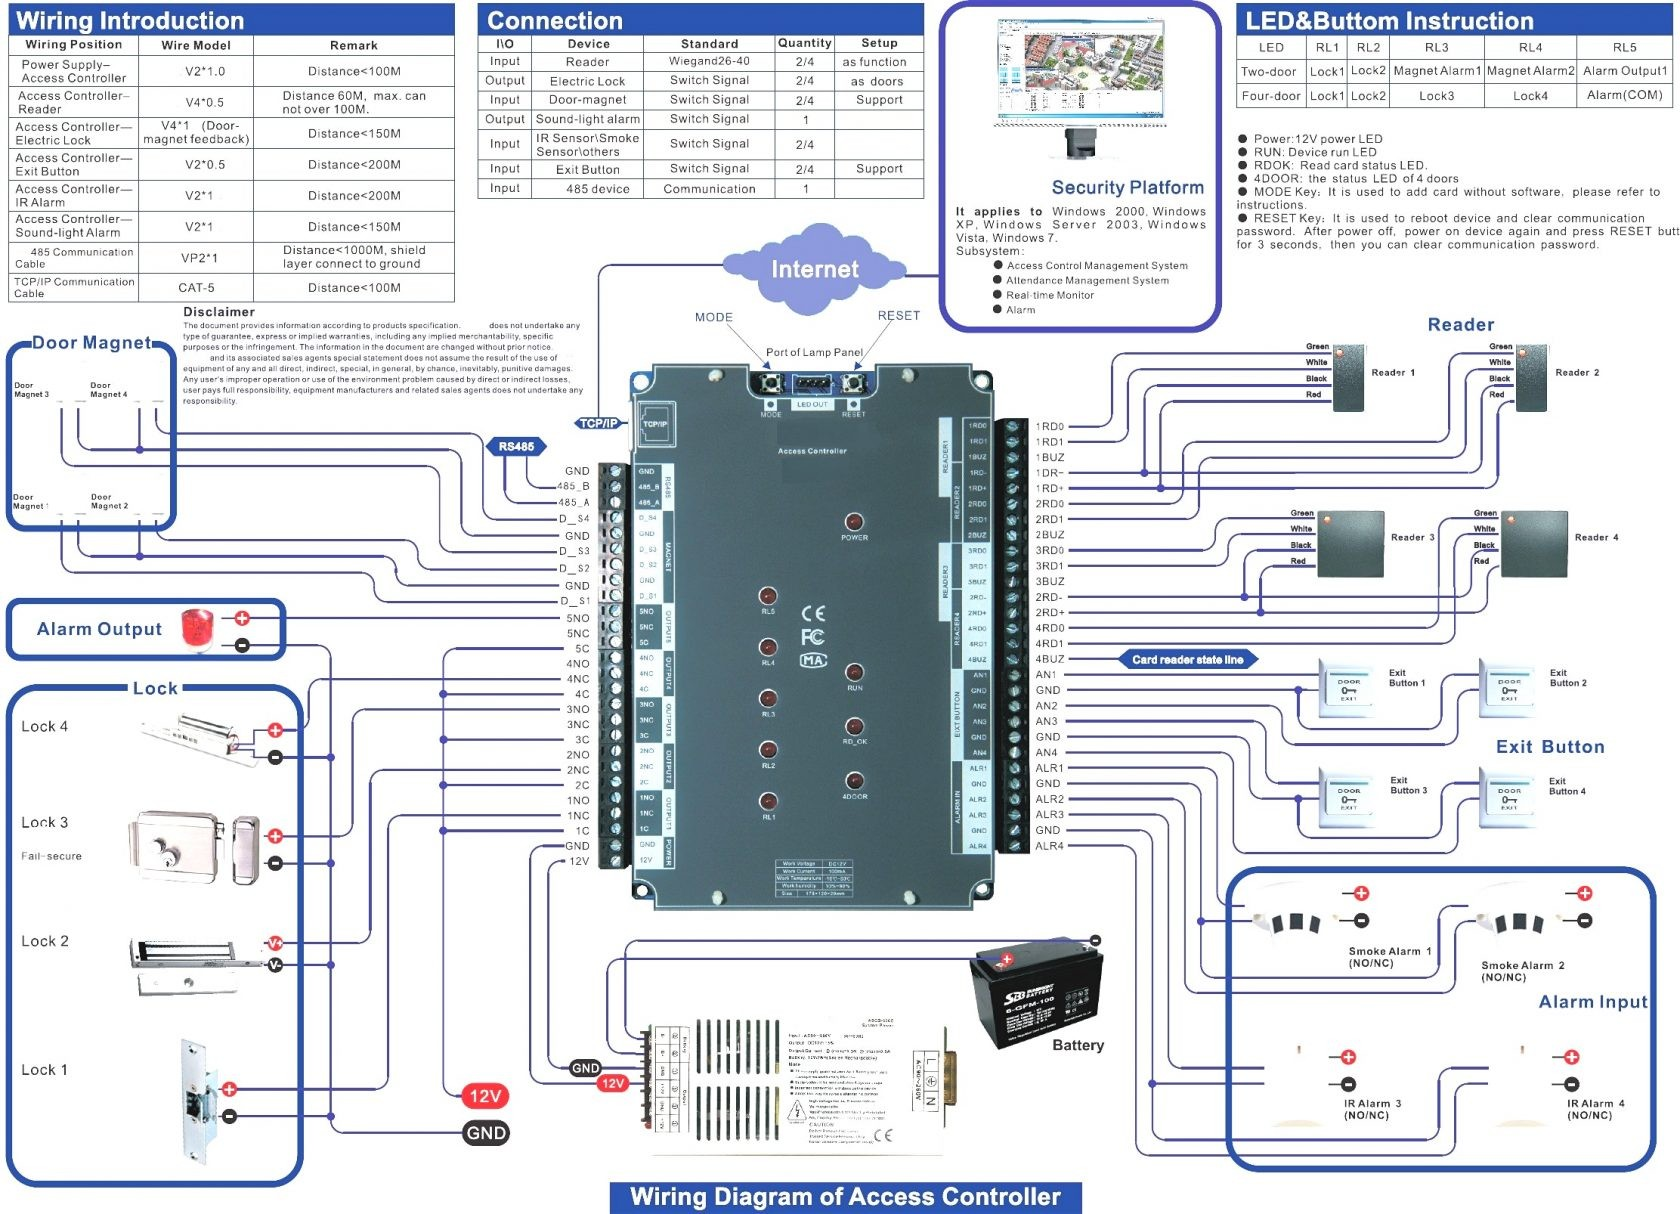 Lenel Access Control Wiring Diagram Lenel Access Control Wiring Diagram Of Lenel Access Control Wiring Diagram